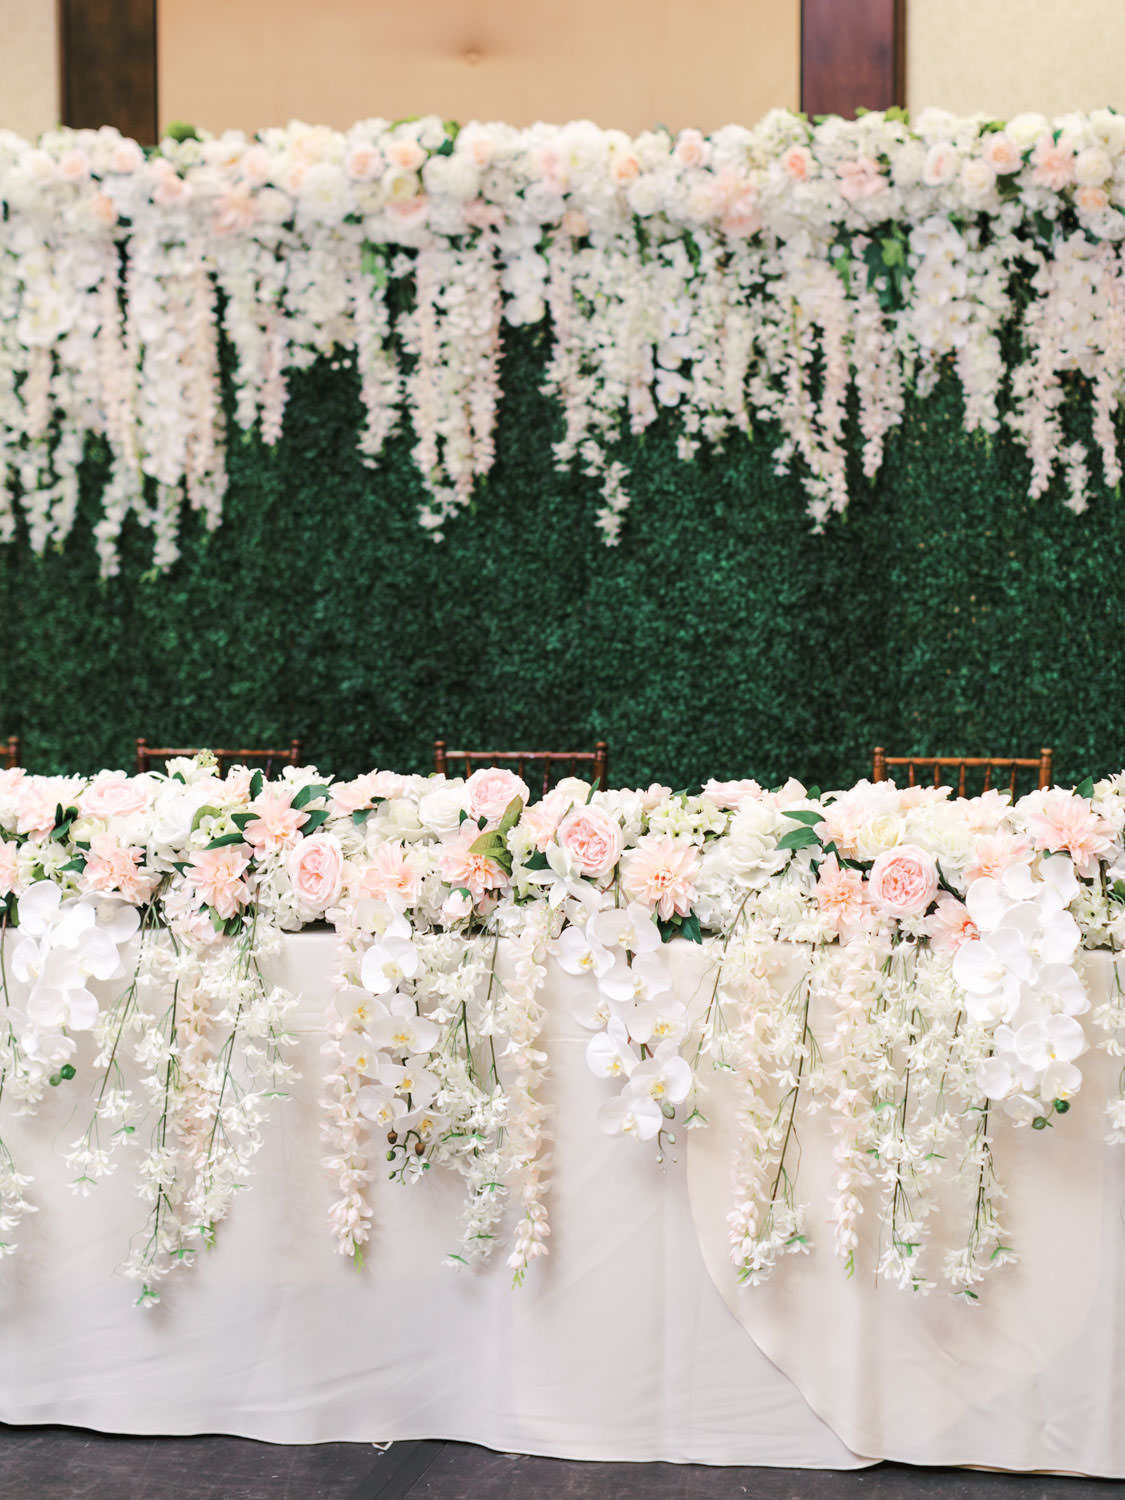 Head table on a stage with a greenery wall backdrop with hanging white and pink flowers on the wall and on the table. Wedding at Rancho Bernardo Inn in the Aragon Ballroom. photo by Cavin Elizabeth Photography